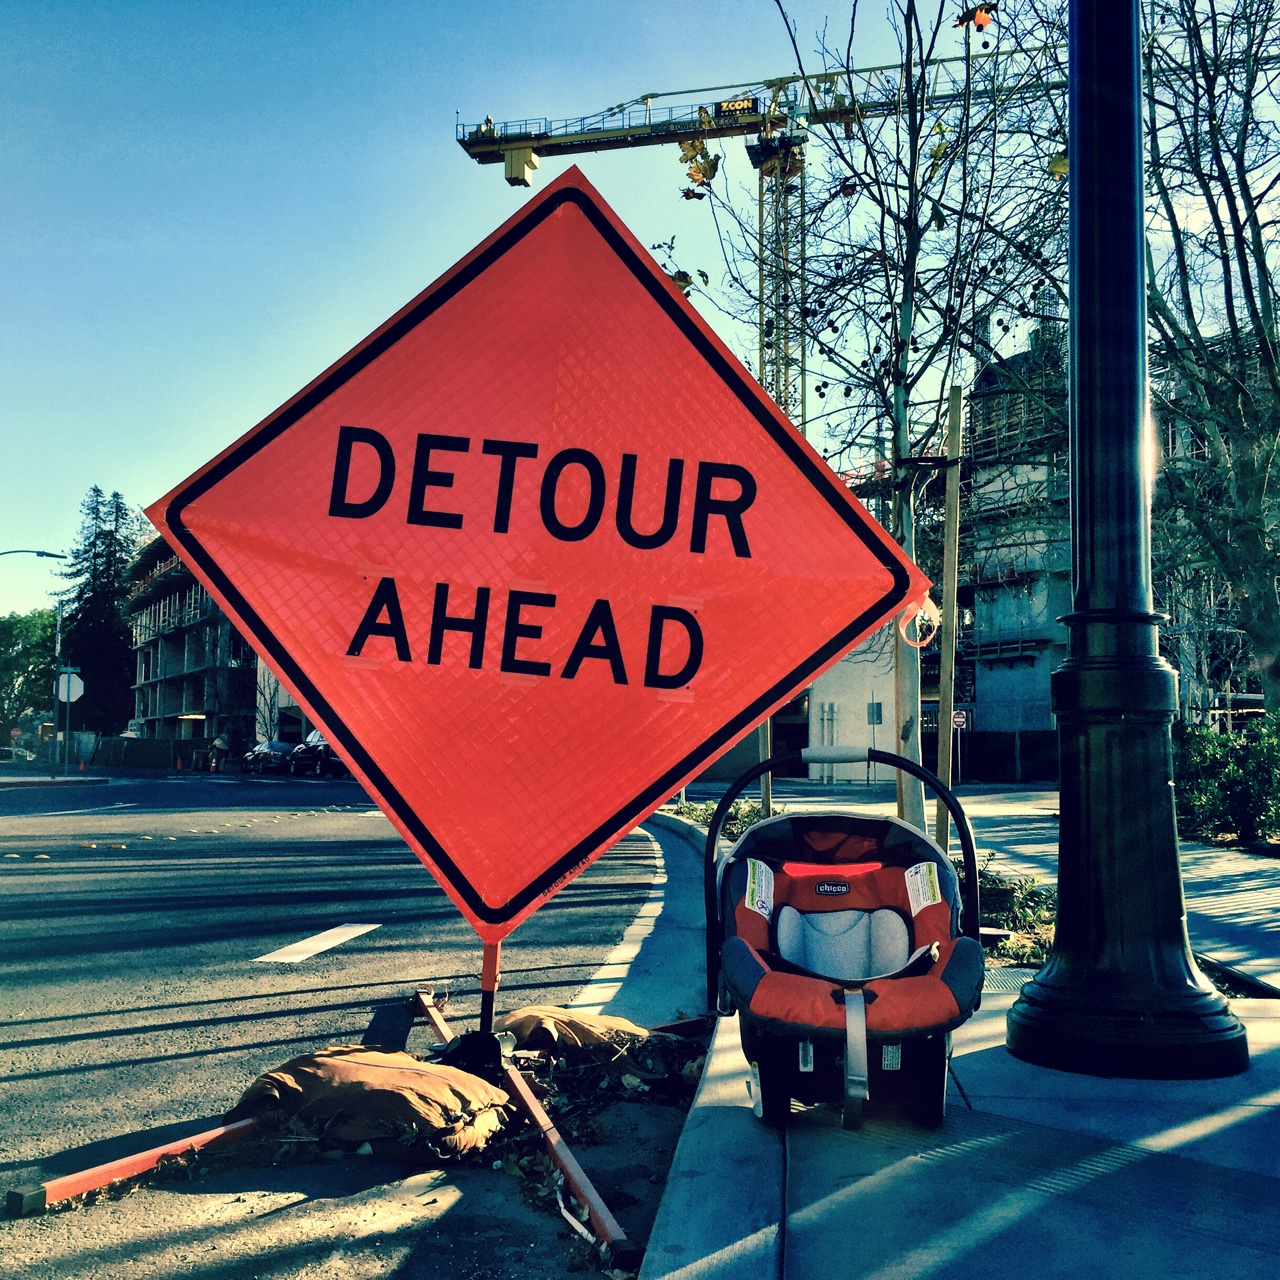 I'm told this detour is the best one yet.